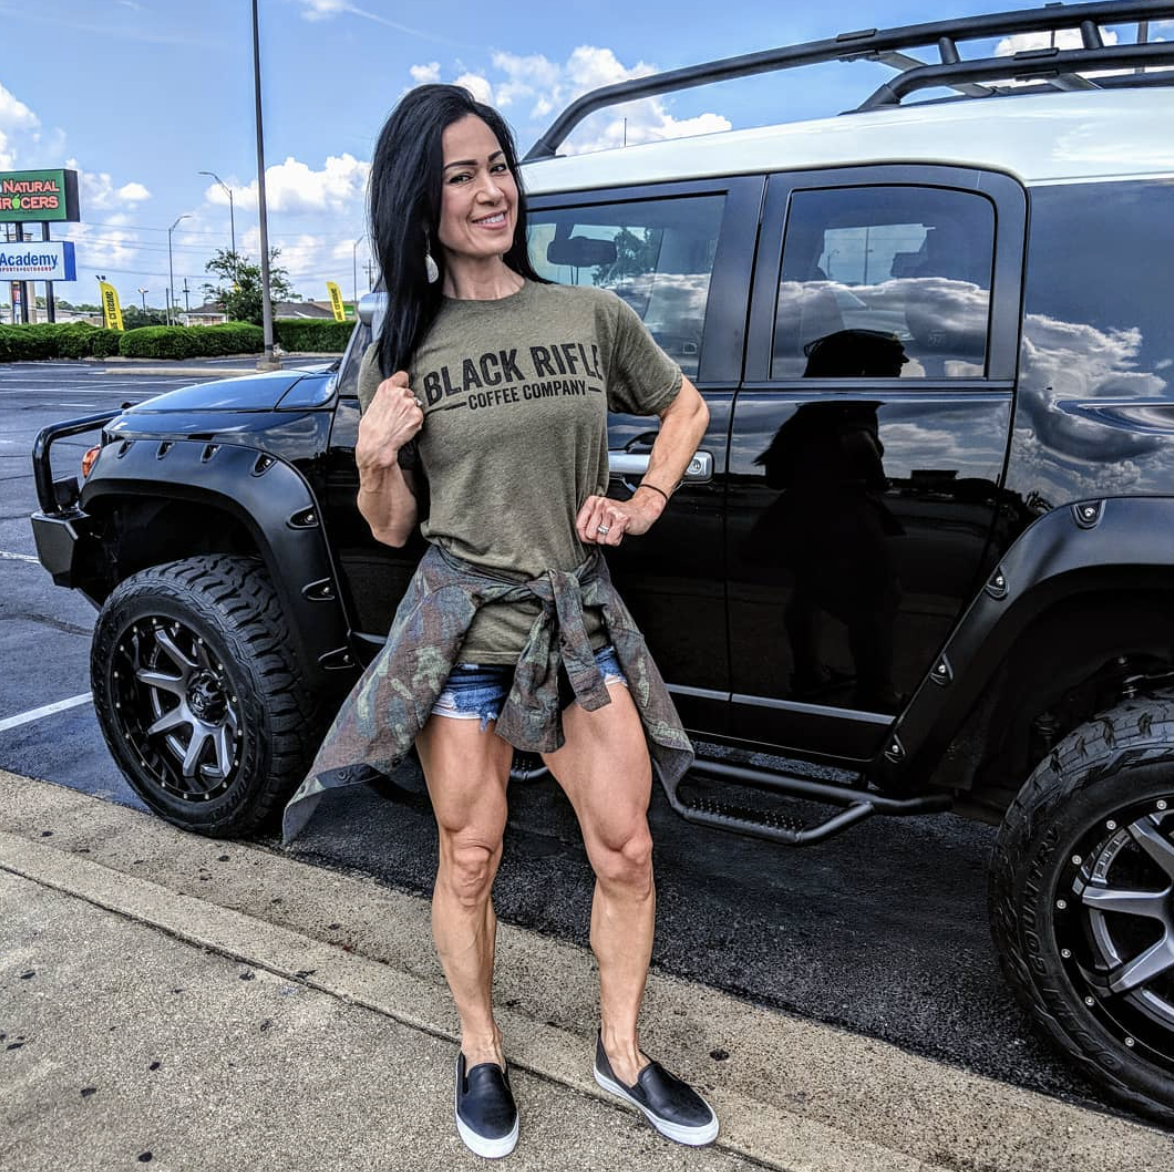 Pin on Awesome Women BRCC